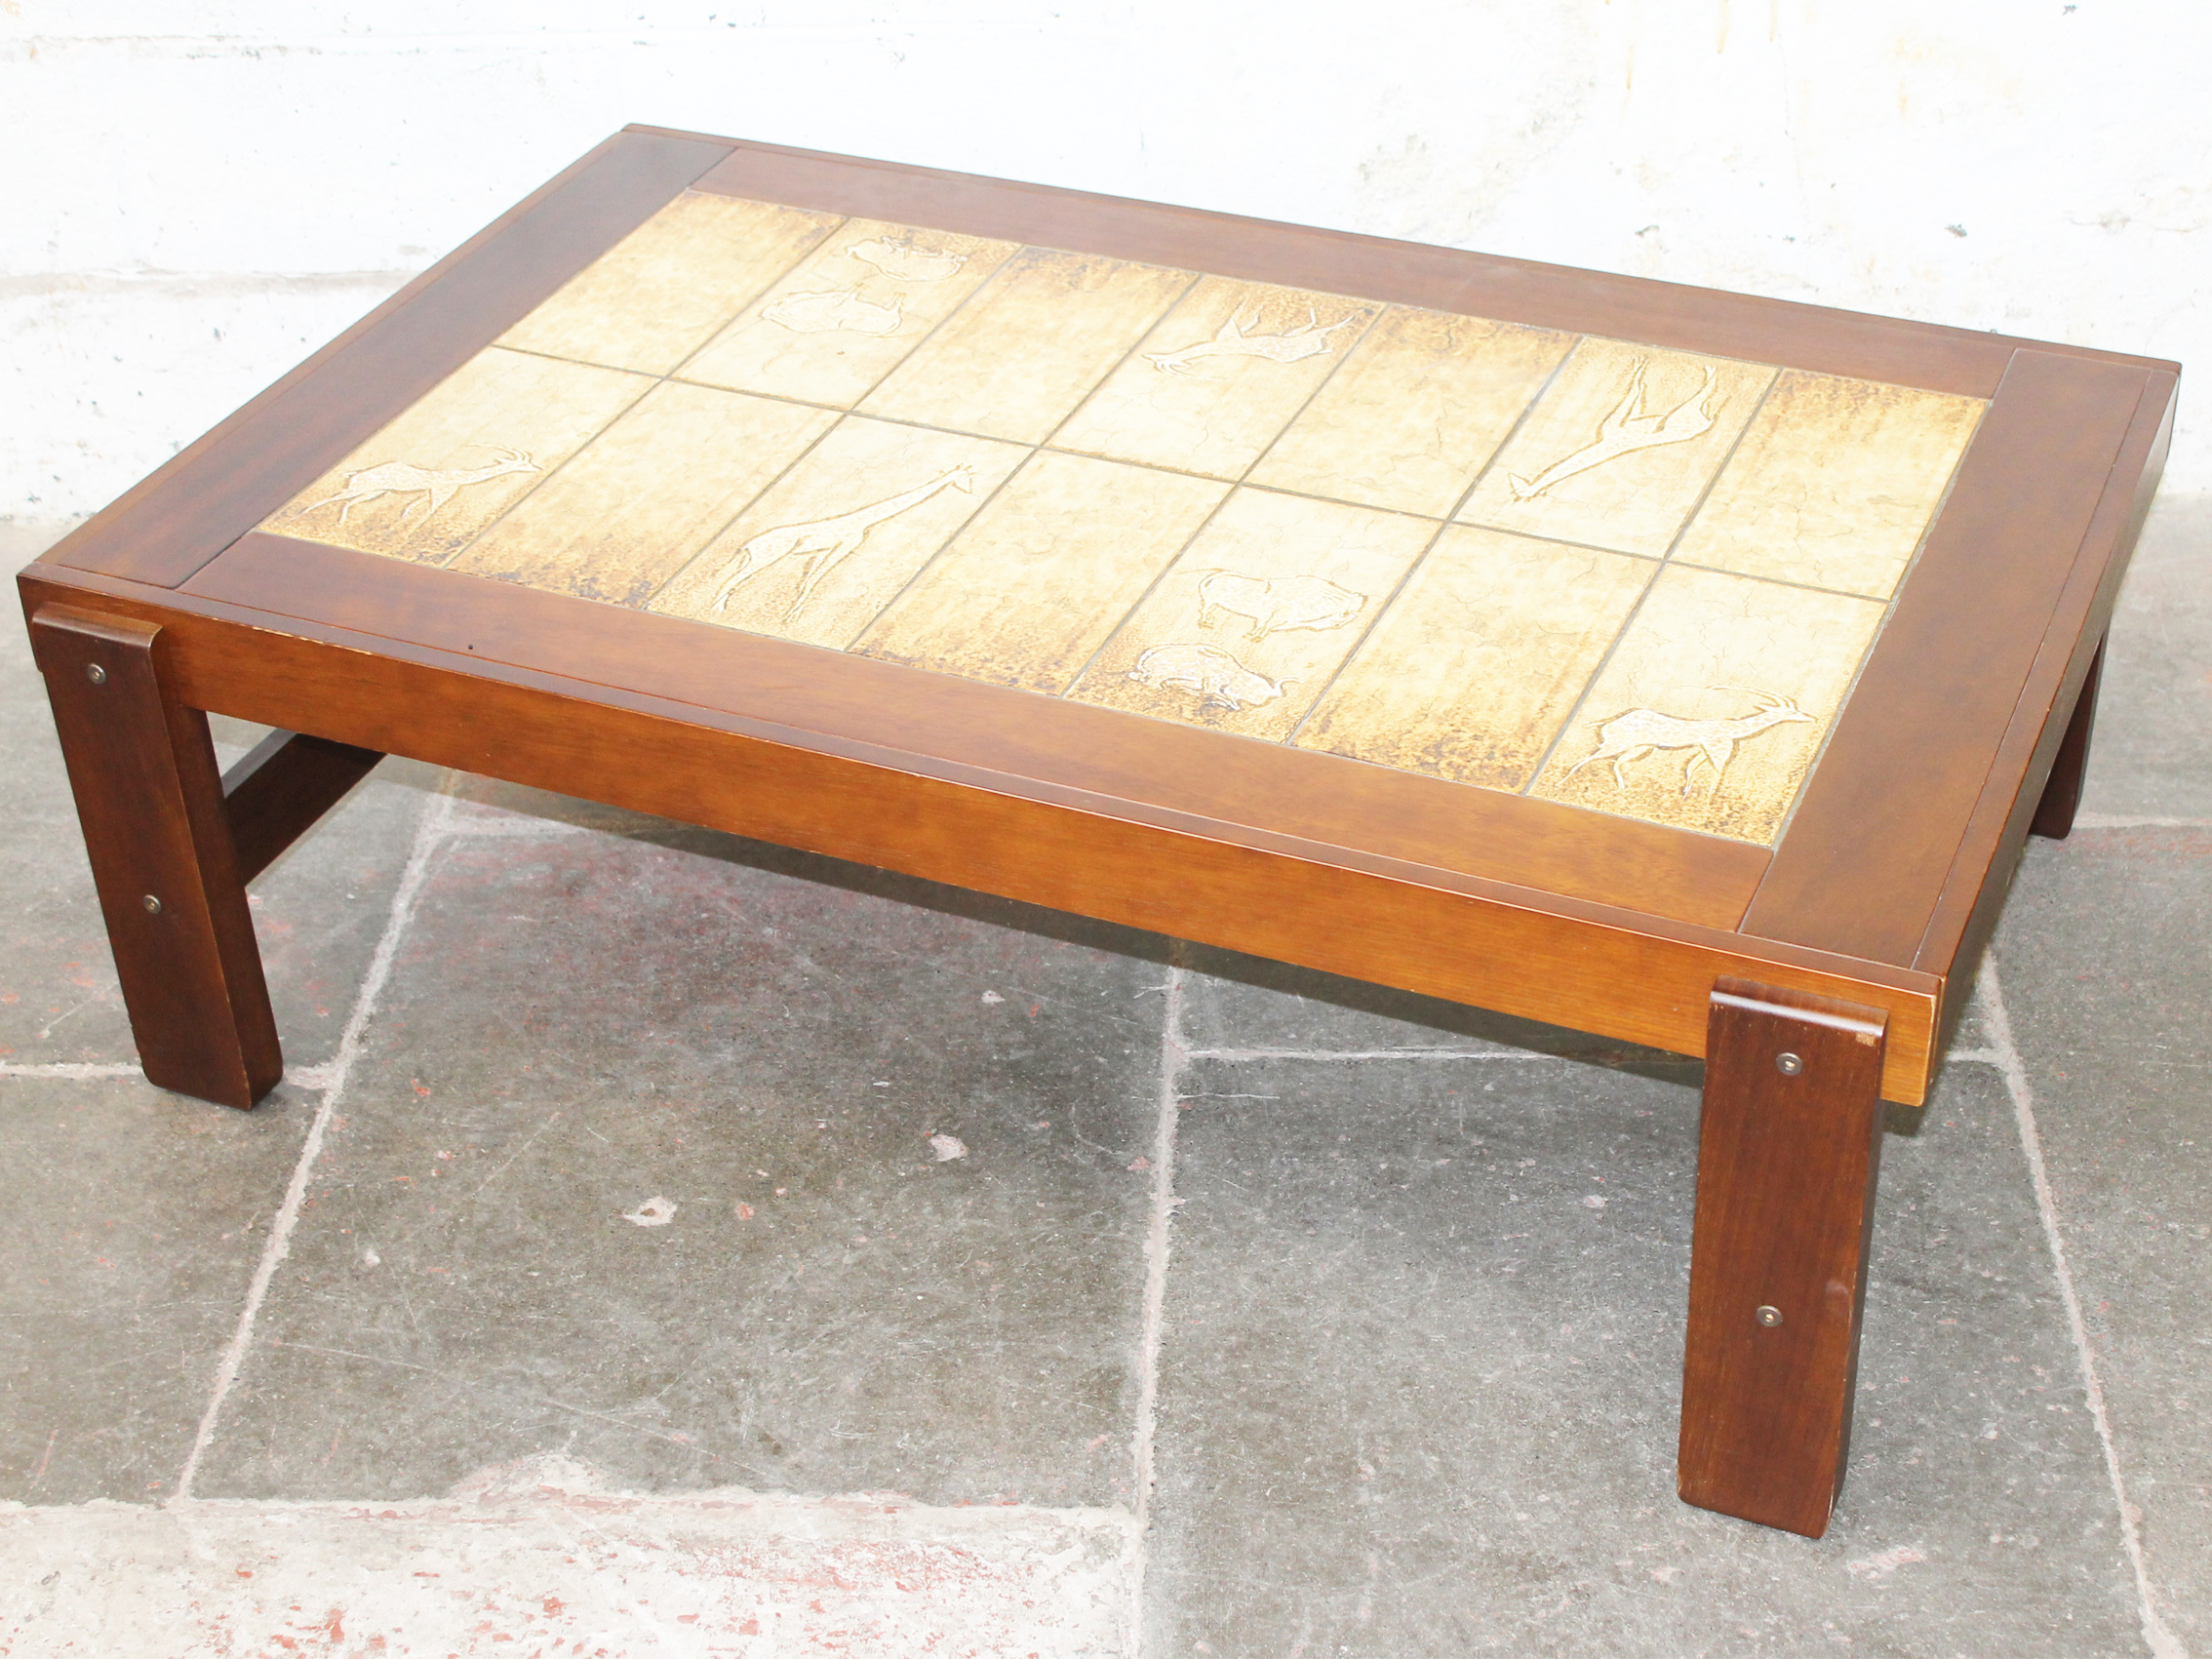 A 1970s coffee table having tiled top the tiles decorated with